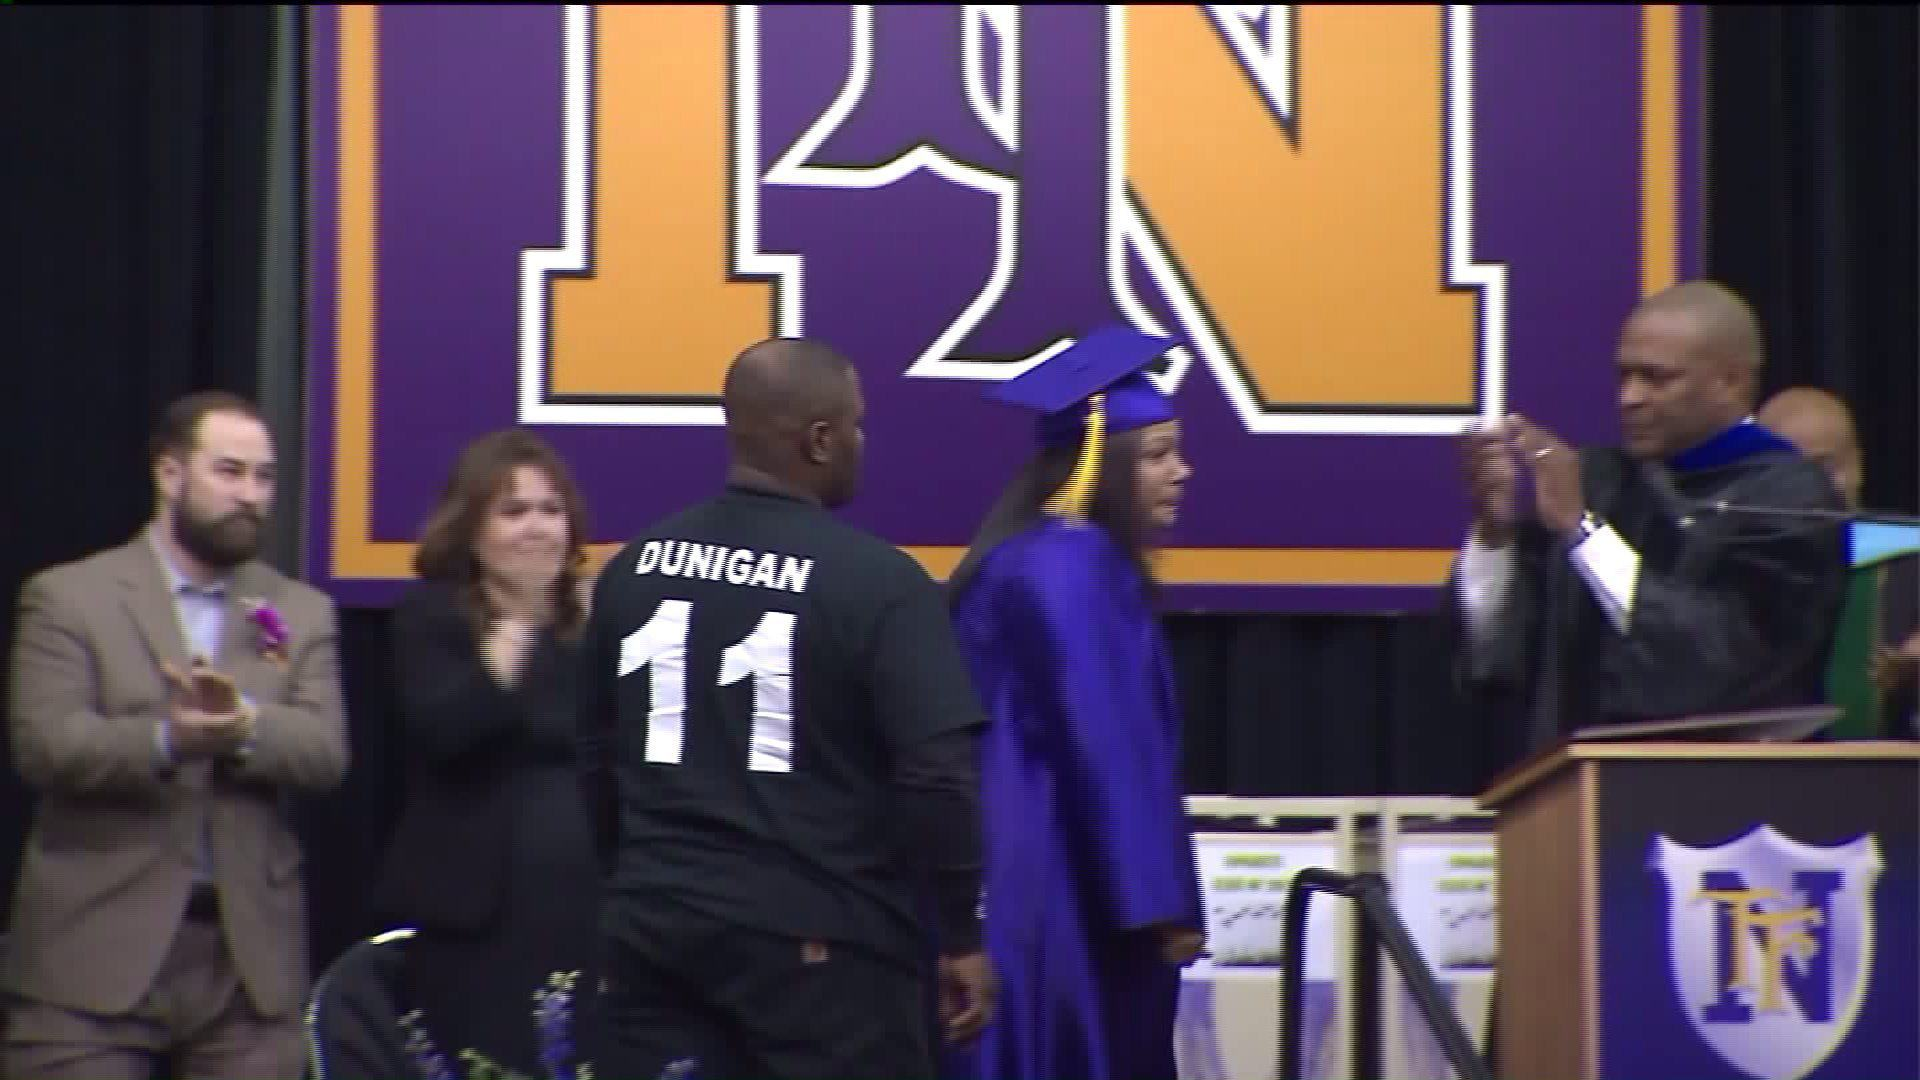 jackson1 Mum Accepts Diploma For Dead Son, Its Seriously Emotional Stuff